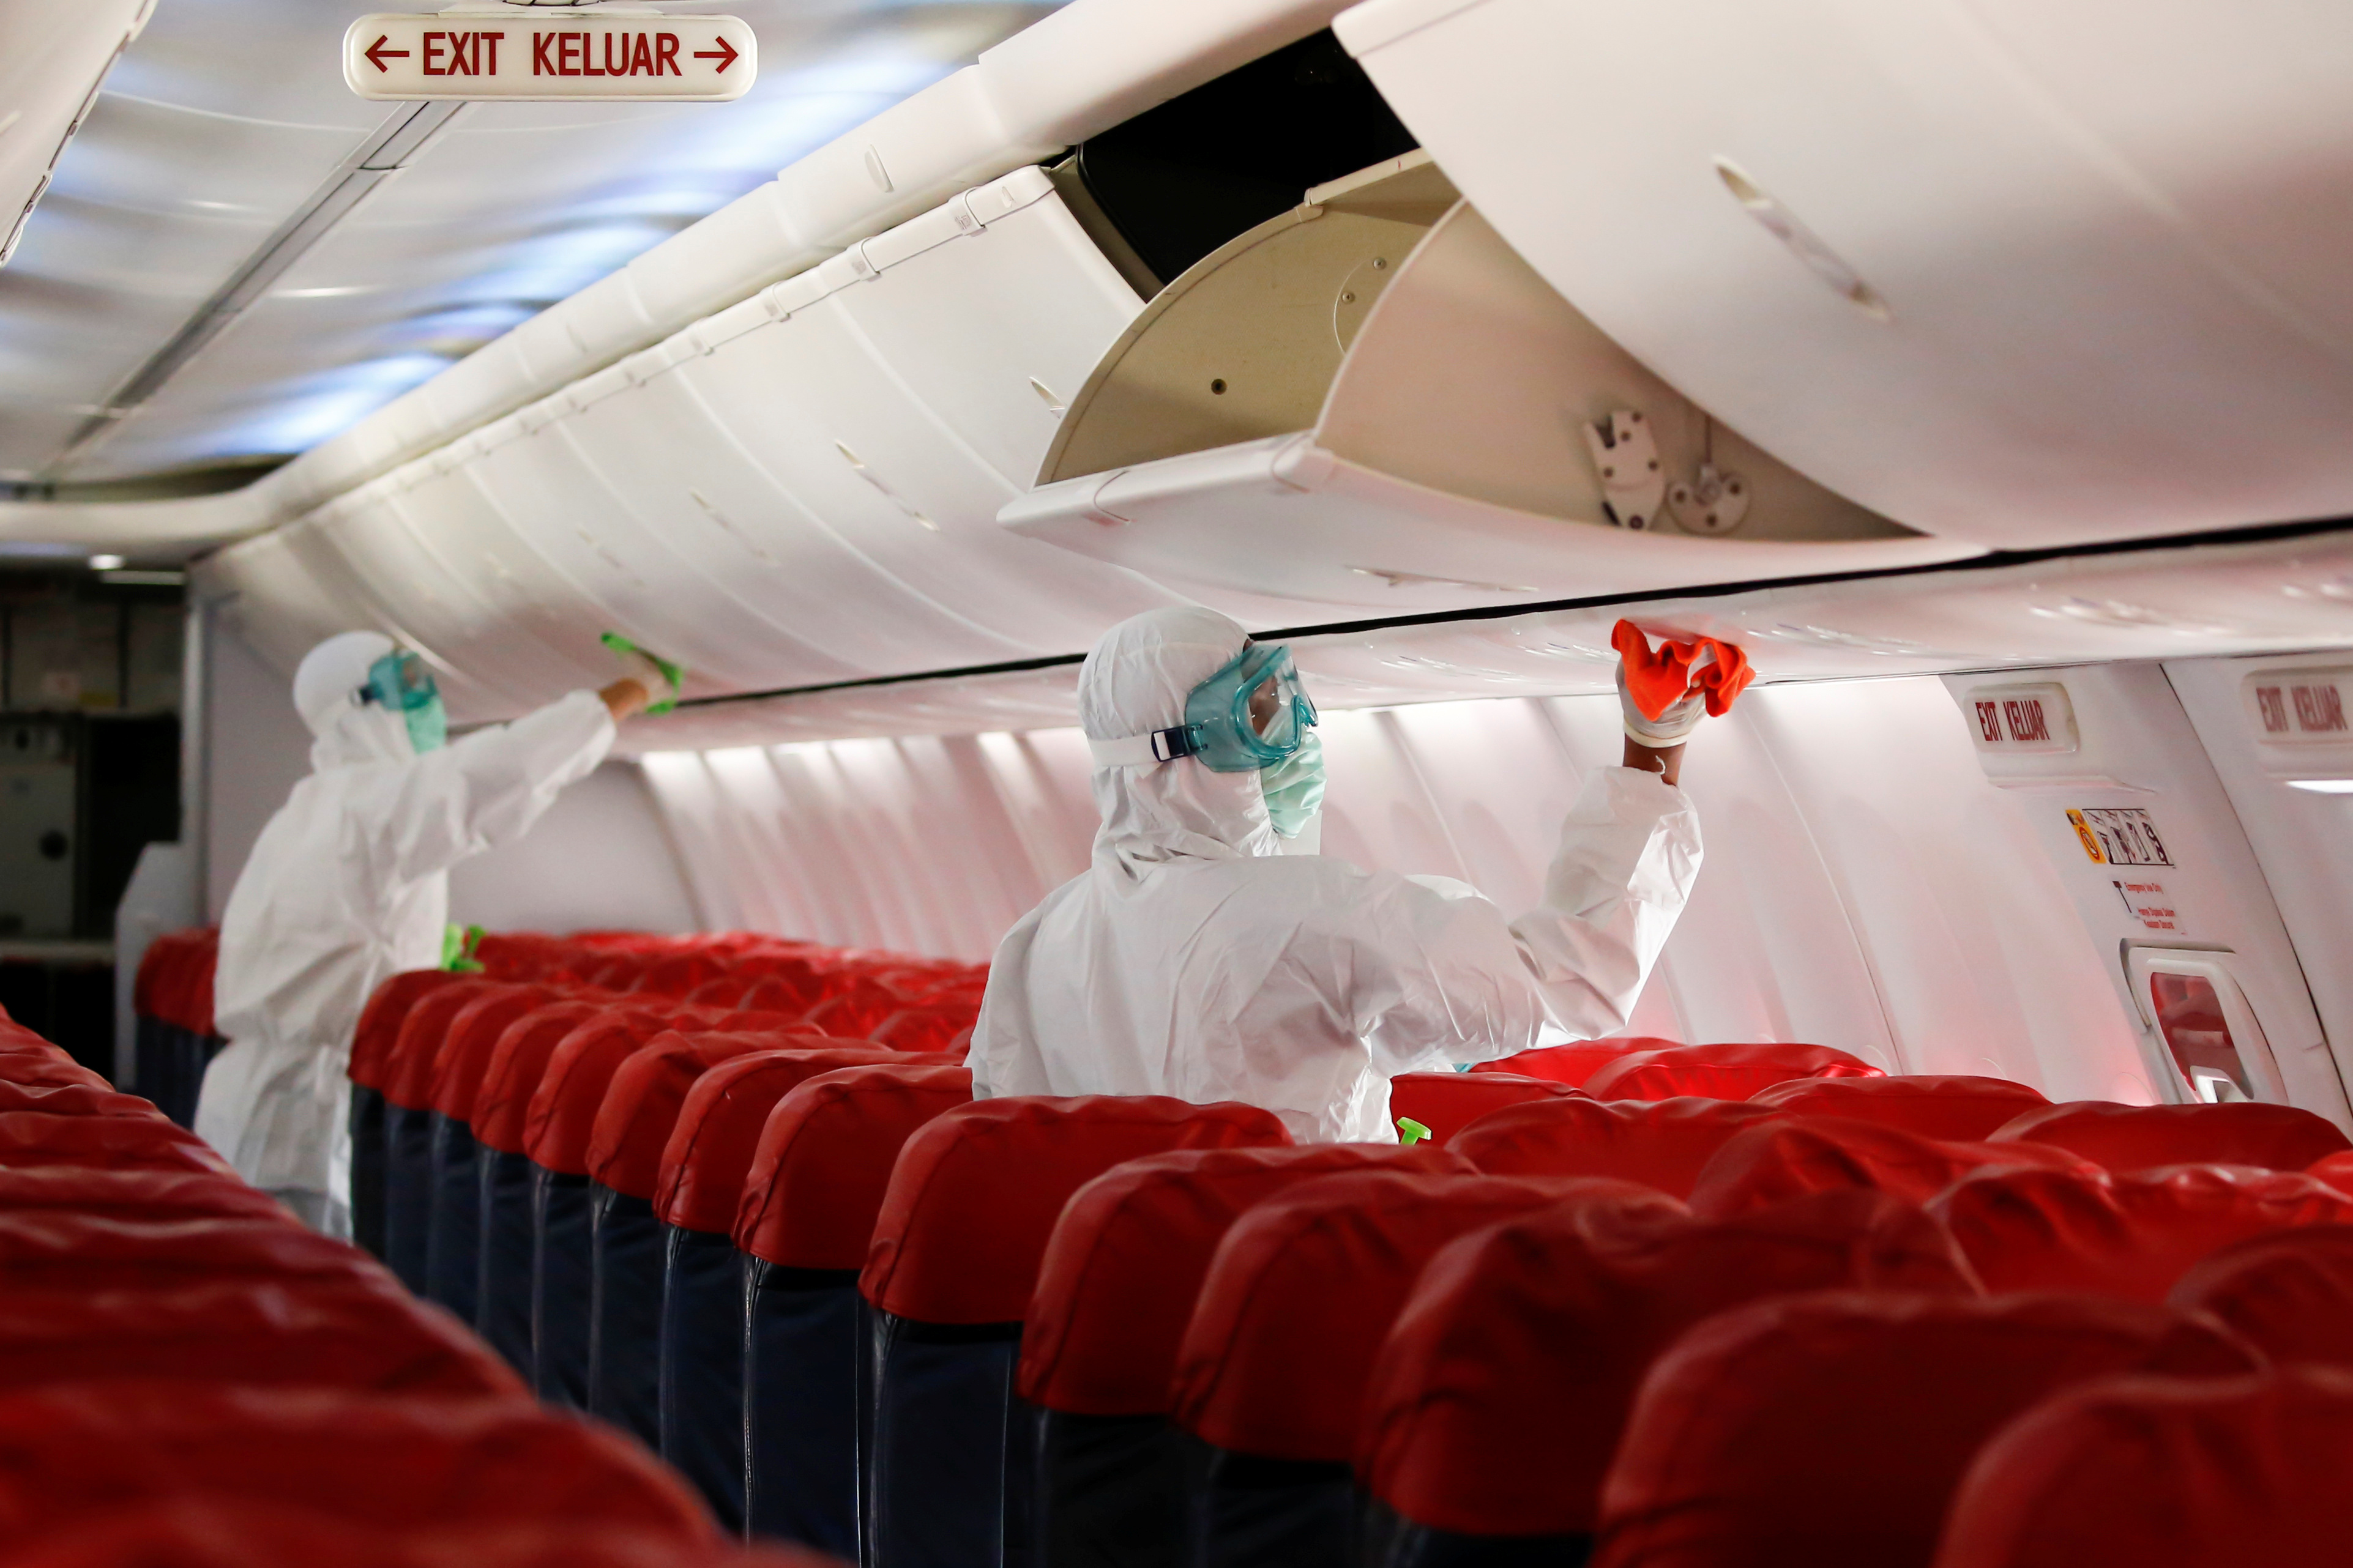 Cleaning workers, wearing protective suits, spray disinfectant inside the cabin of a Lion Air's Boeing 737-800, amid the spread of coronavirus disease (COVID-19), at Soekarno-Hatta International Airport near Jakarta, Indonesia, March 17, 2020. REUTERS/Willy Kurniawan/Files